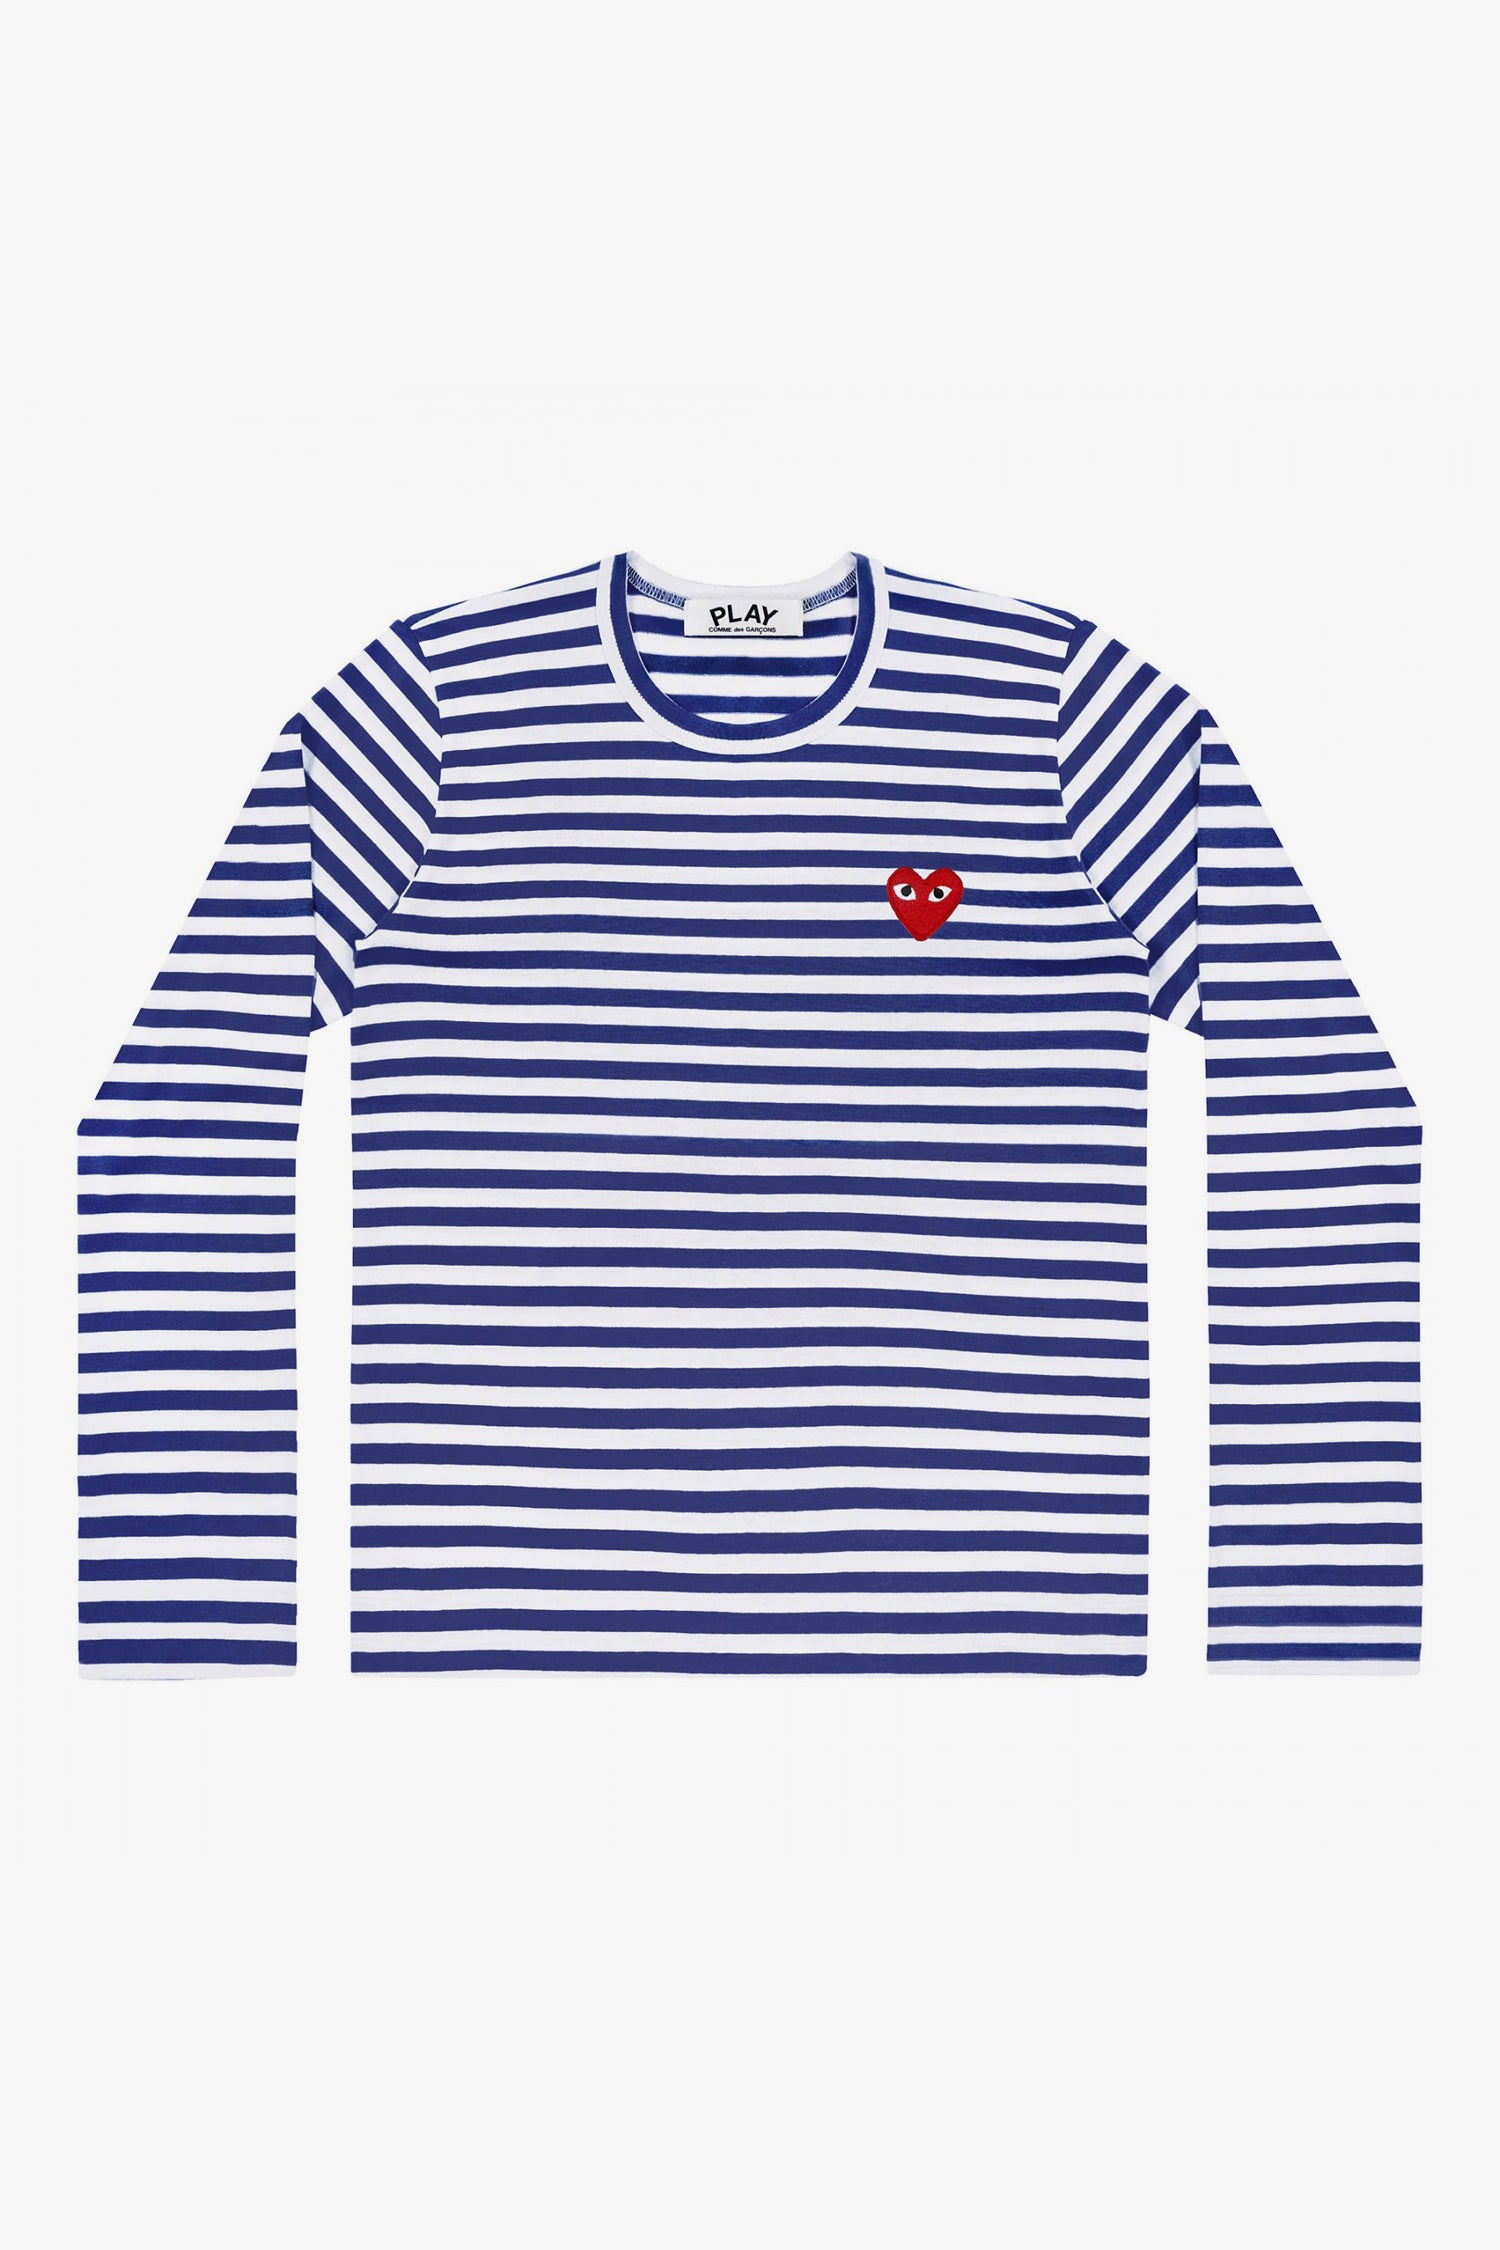 Selectshop FRAME - COMME DES GARCONS PLAY Red Heart Blue Stripes Longsleeve T-Shirt Dubai